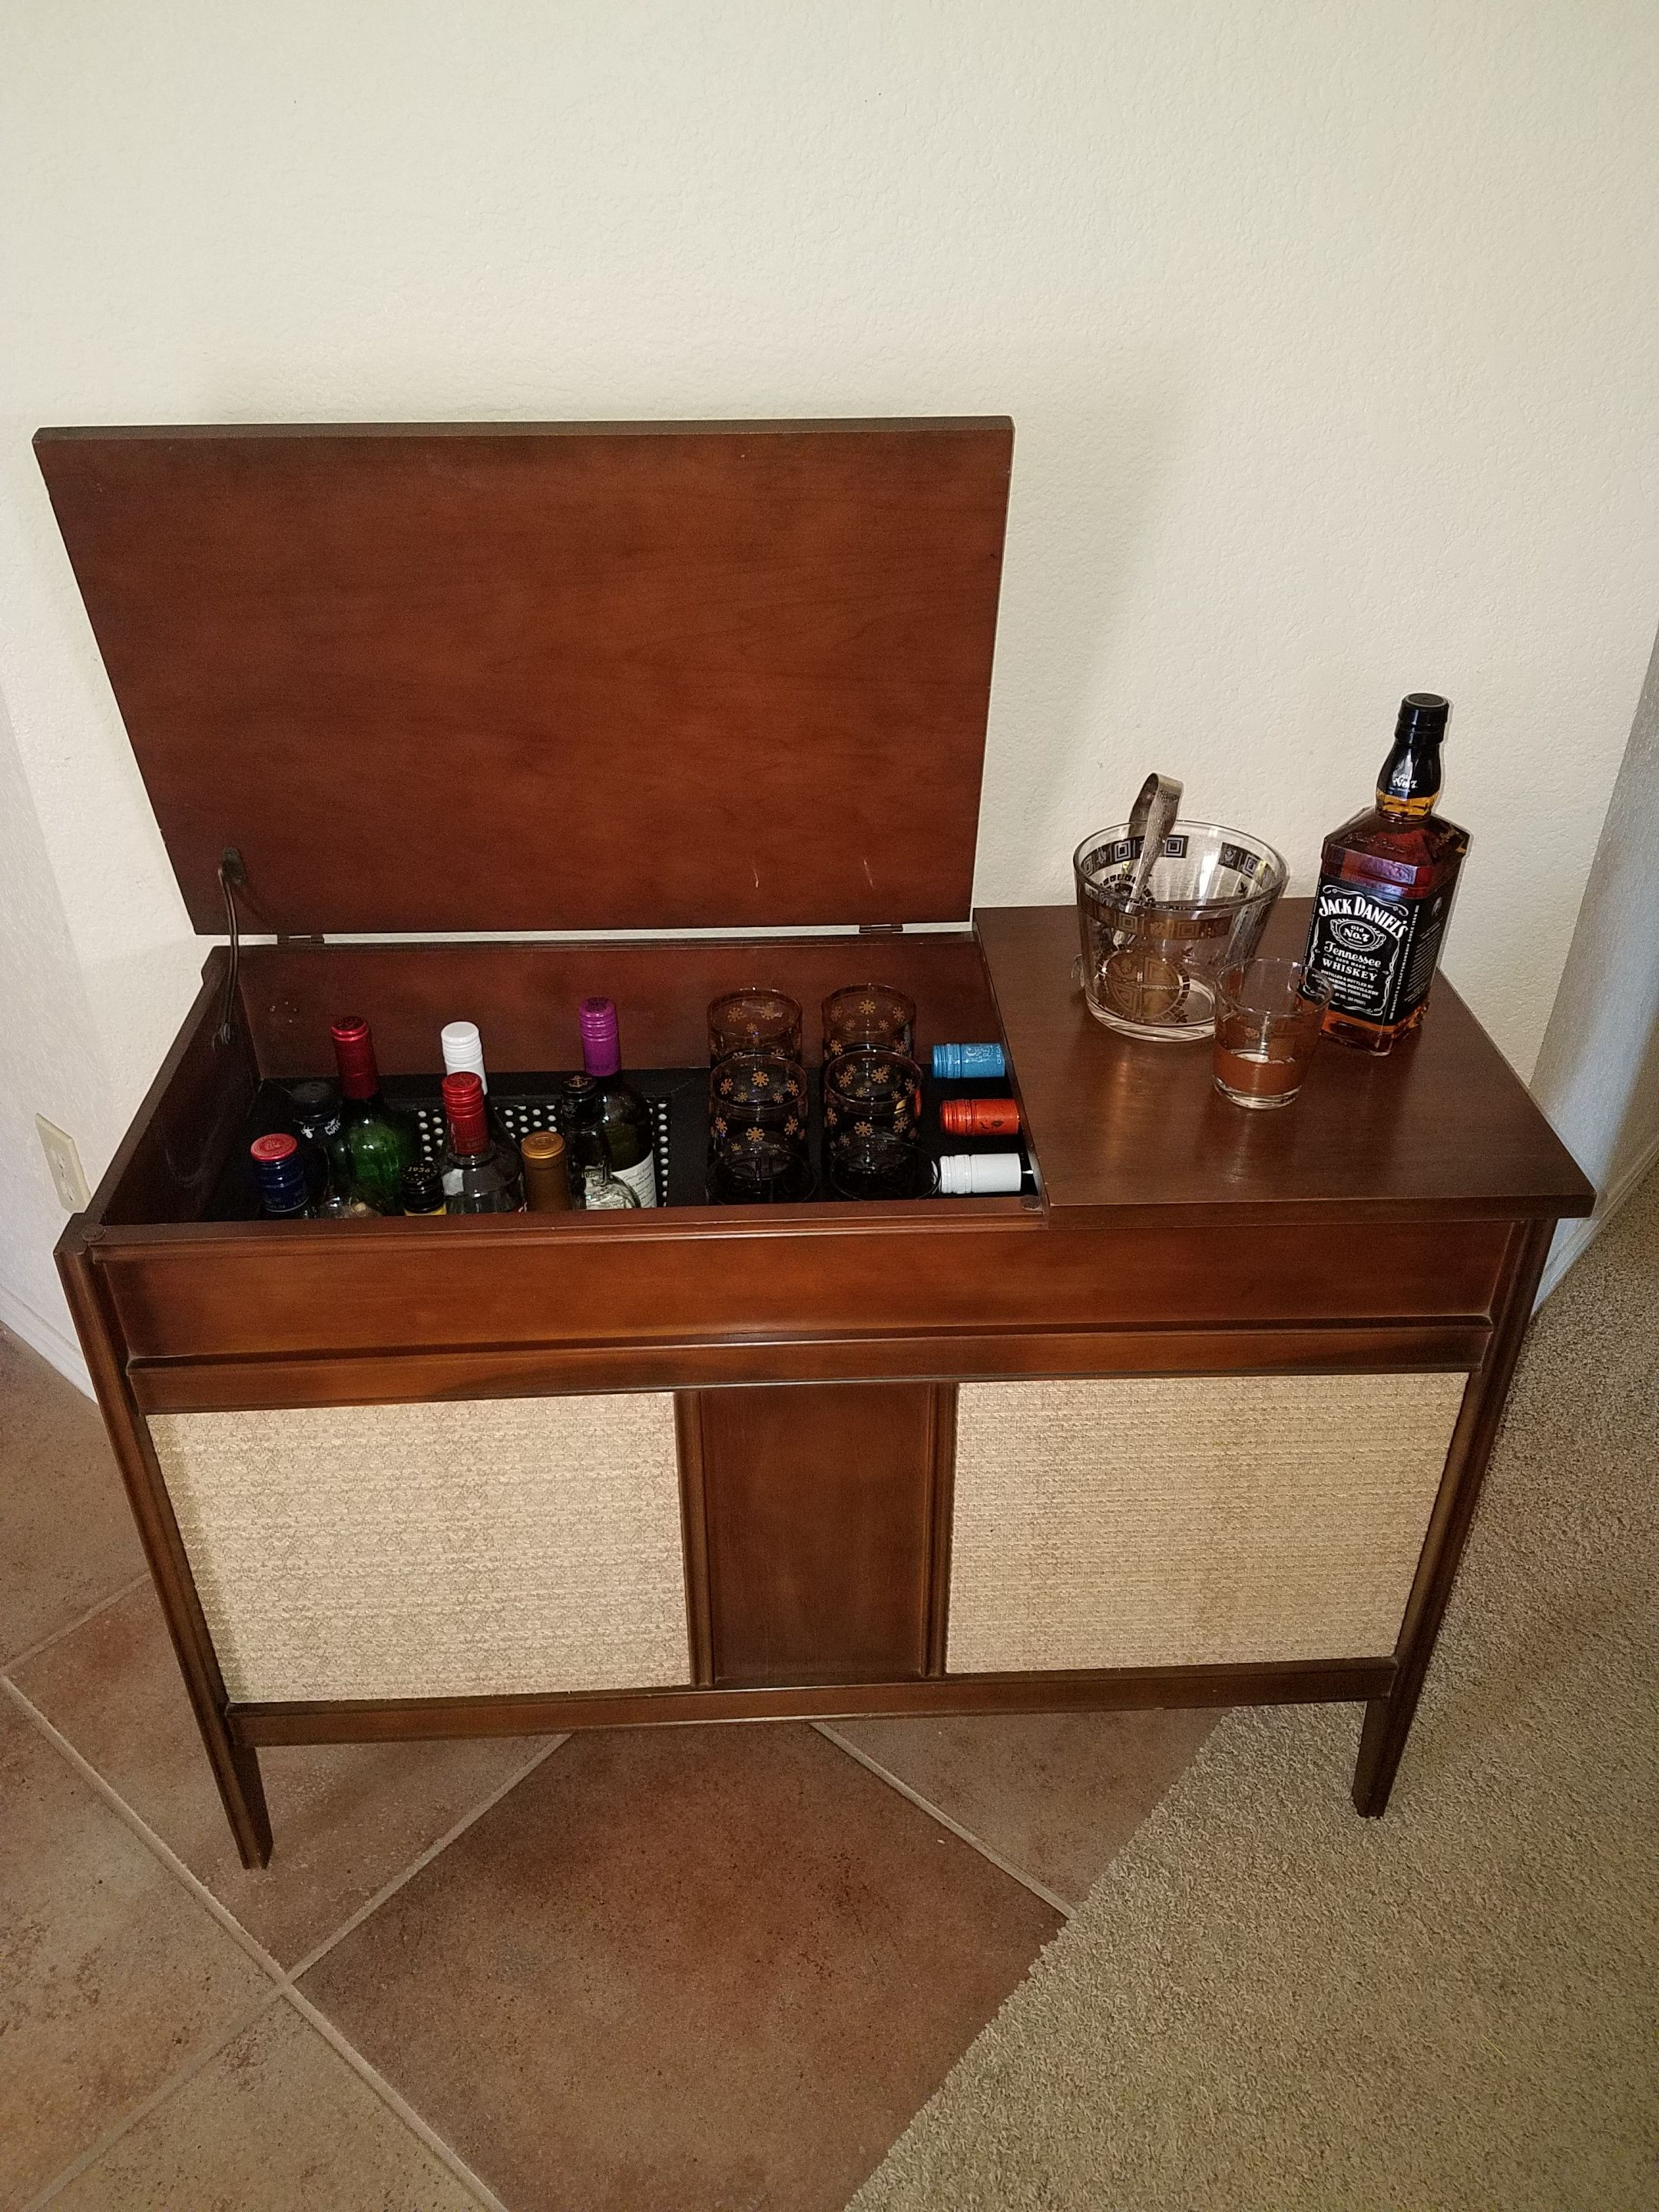 Gadsden Muebles - This Mid Century Bar Was Repurposed From A Vintage Ge Record [mjhdah]https://assets3.domestika.org/project-items/000/531/553/Escritorio_en_P-big.jpg?1394643038